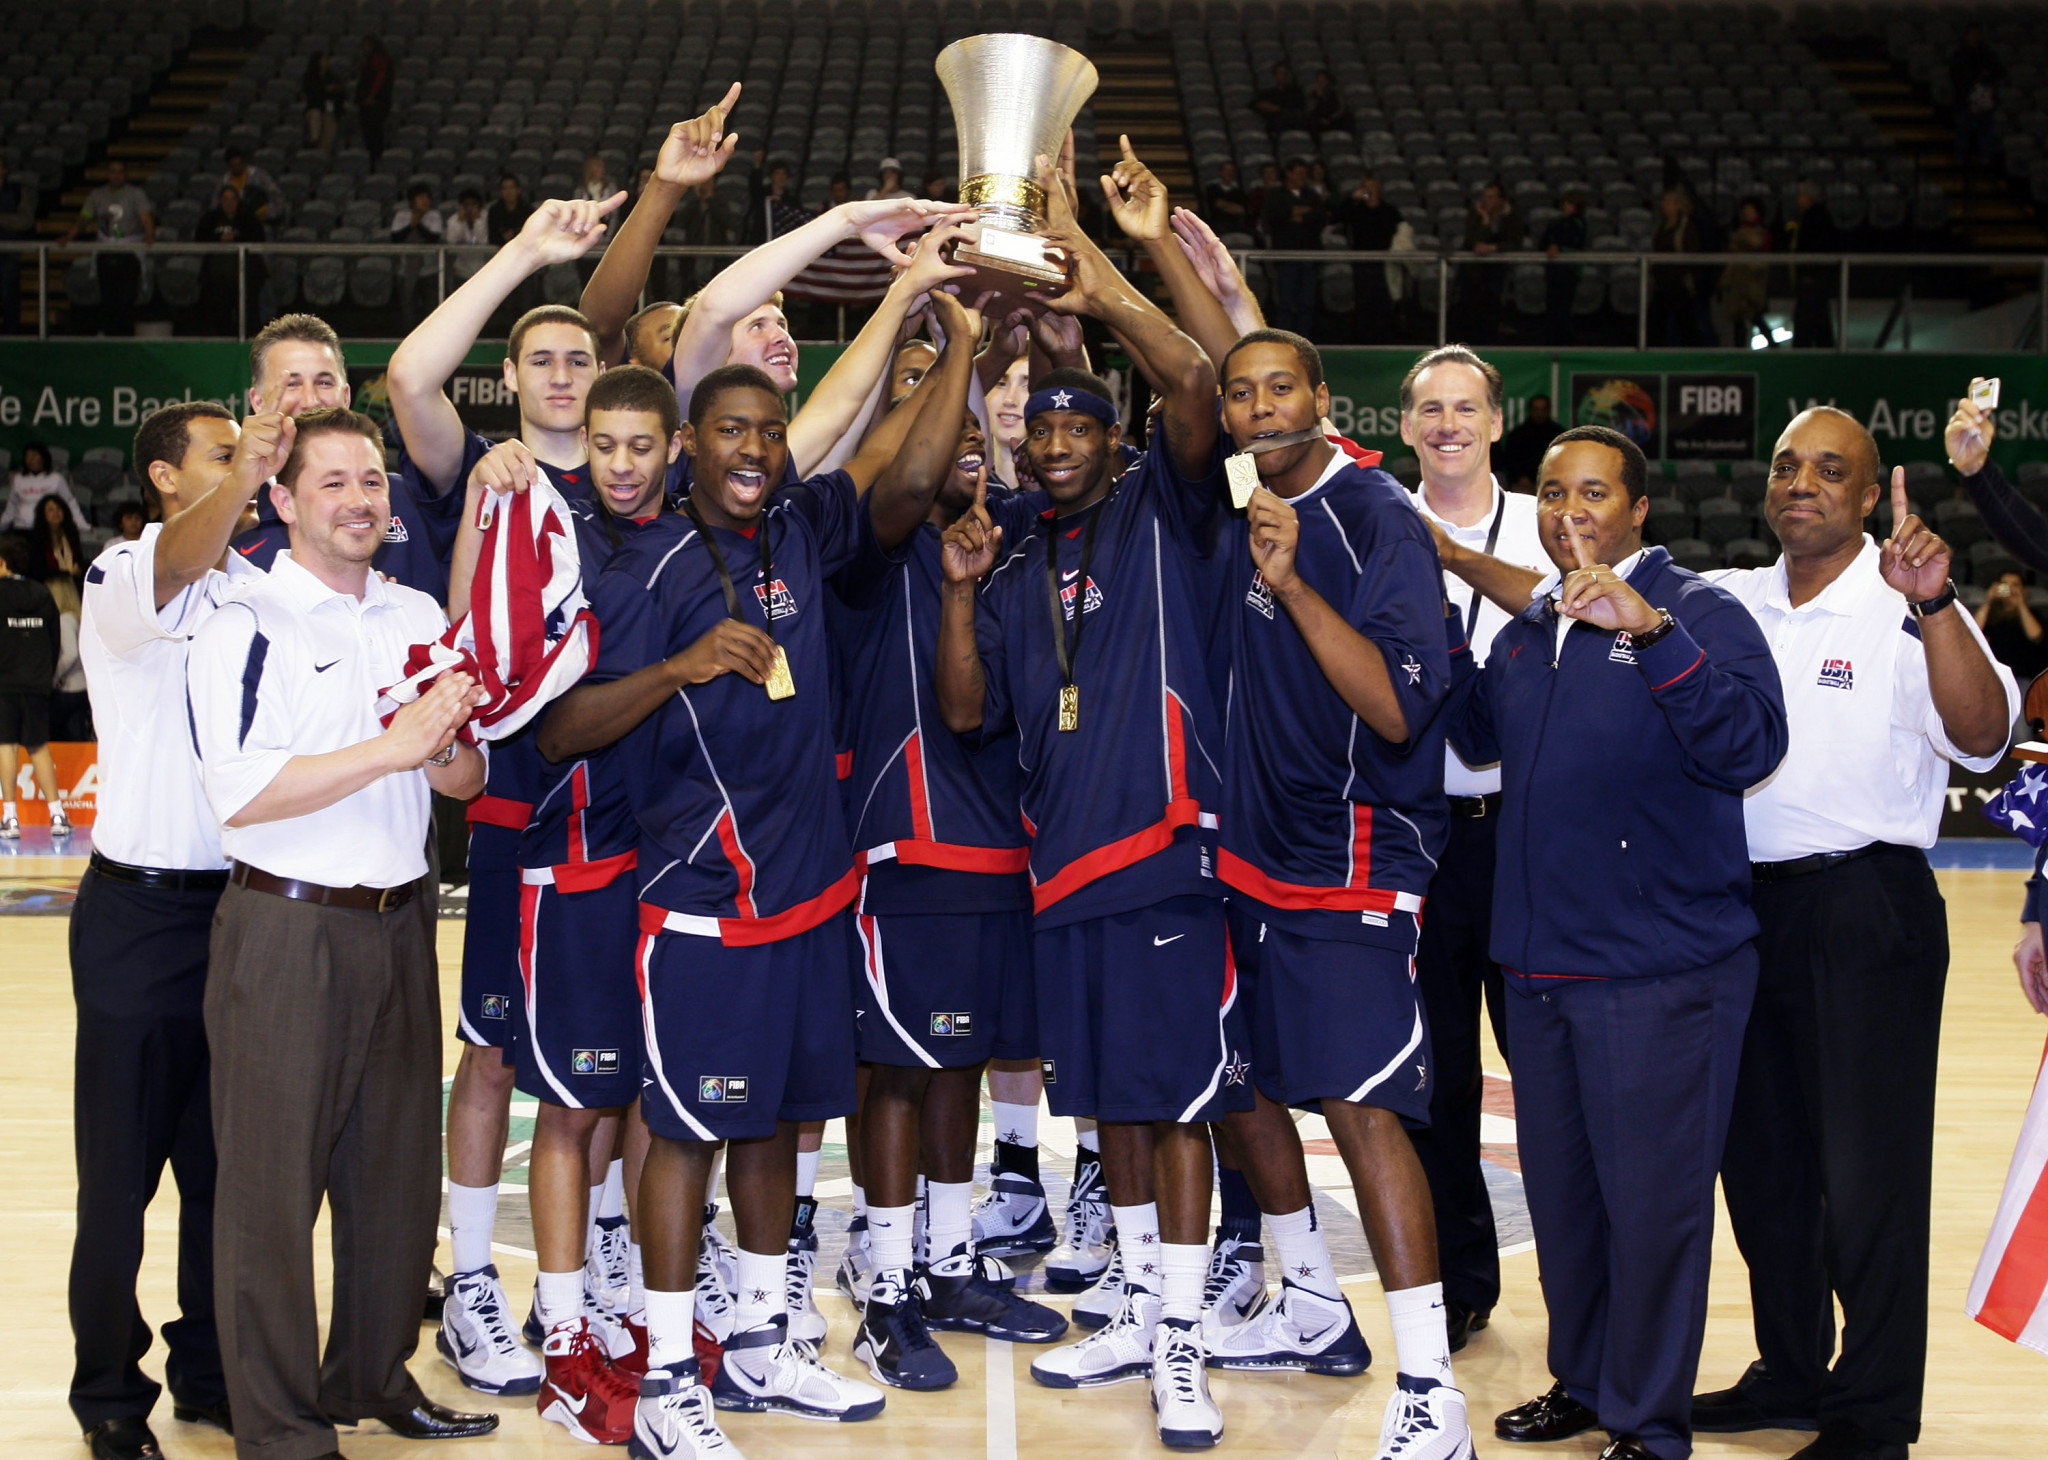 Defending champions United States one of four group winners at Under-19 Basketball World Cup